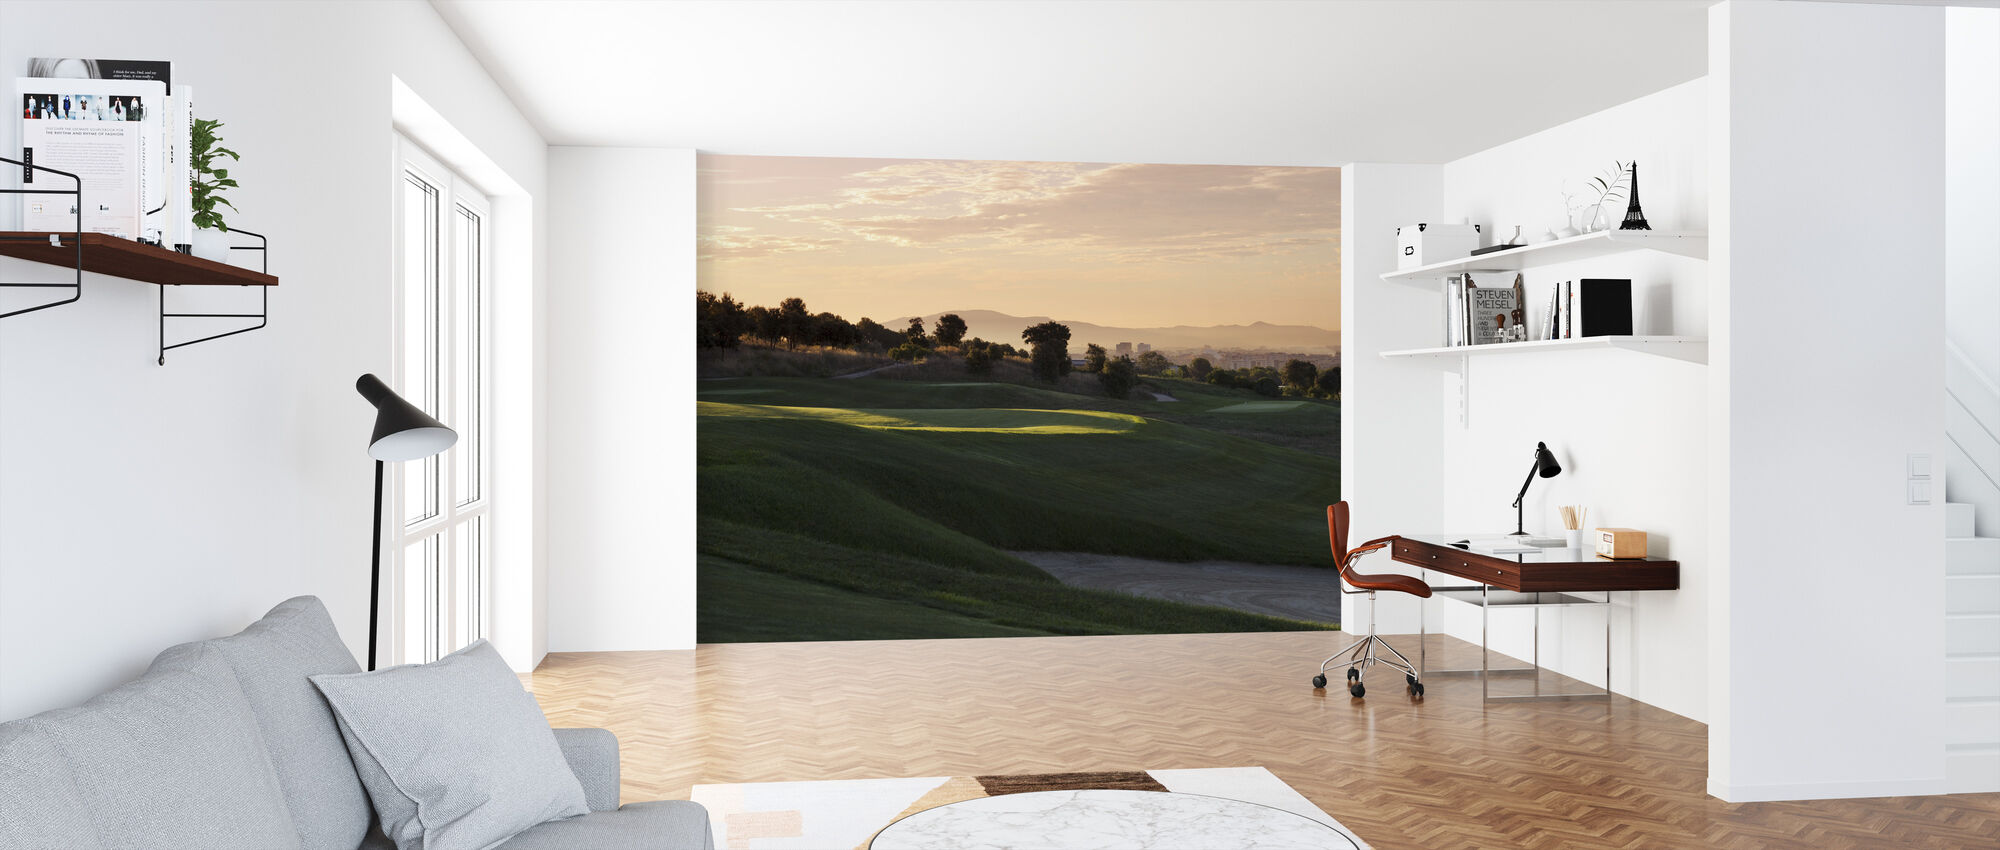 Golf Court in Barcelona - Wallpaper - Office